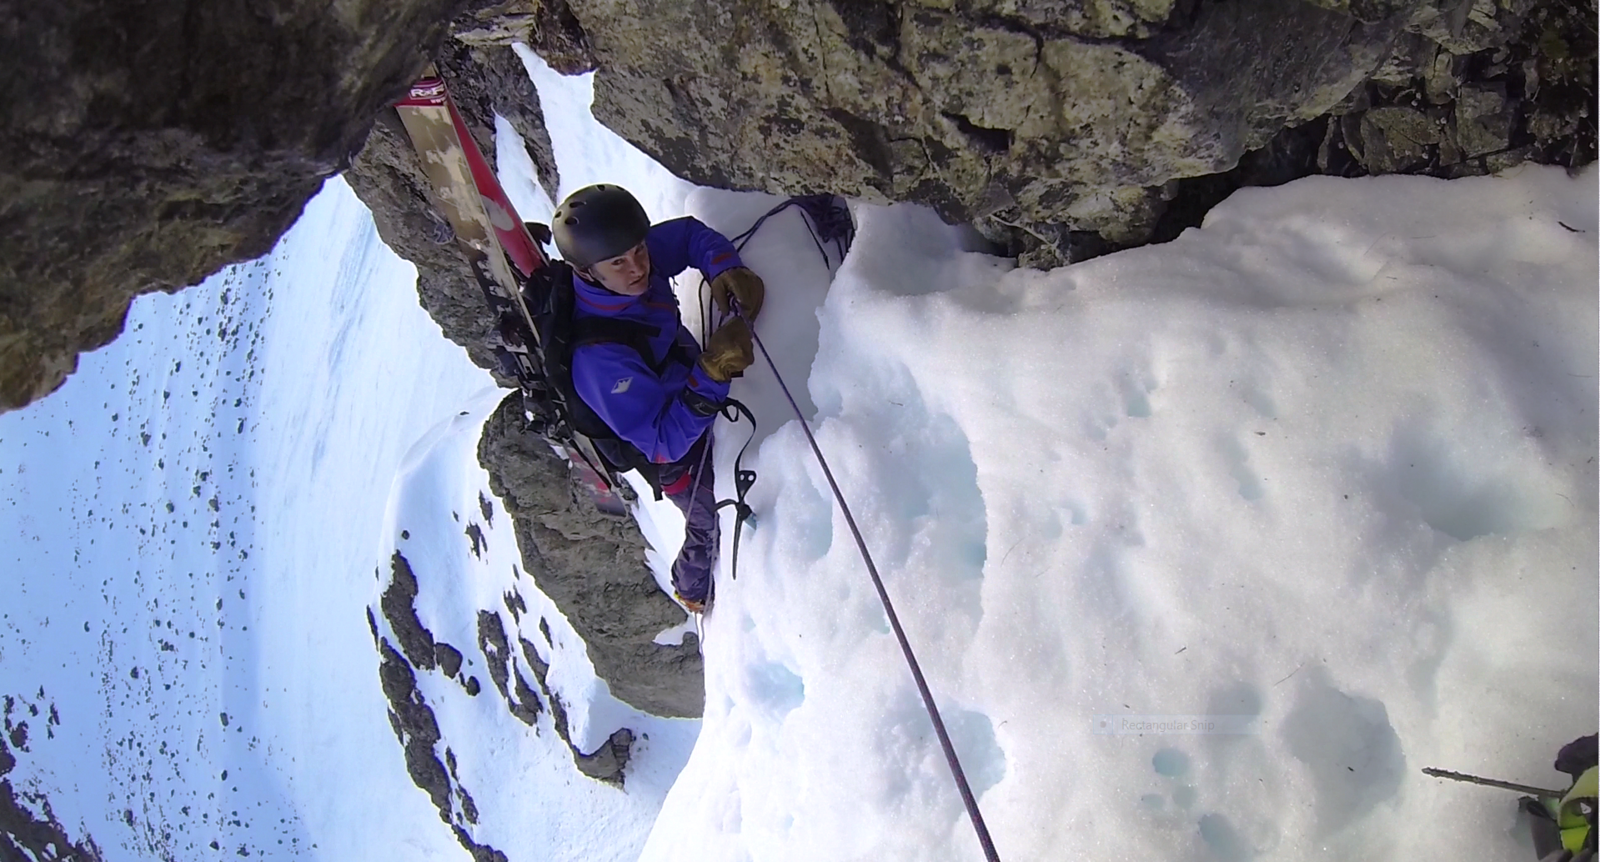 Moving out from the belay into the Hanging Couloir on Otira Valley headwall